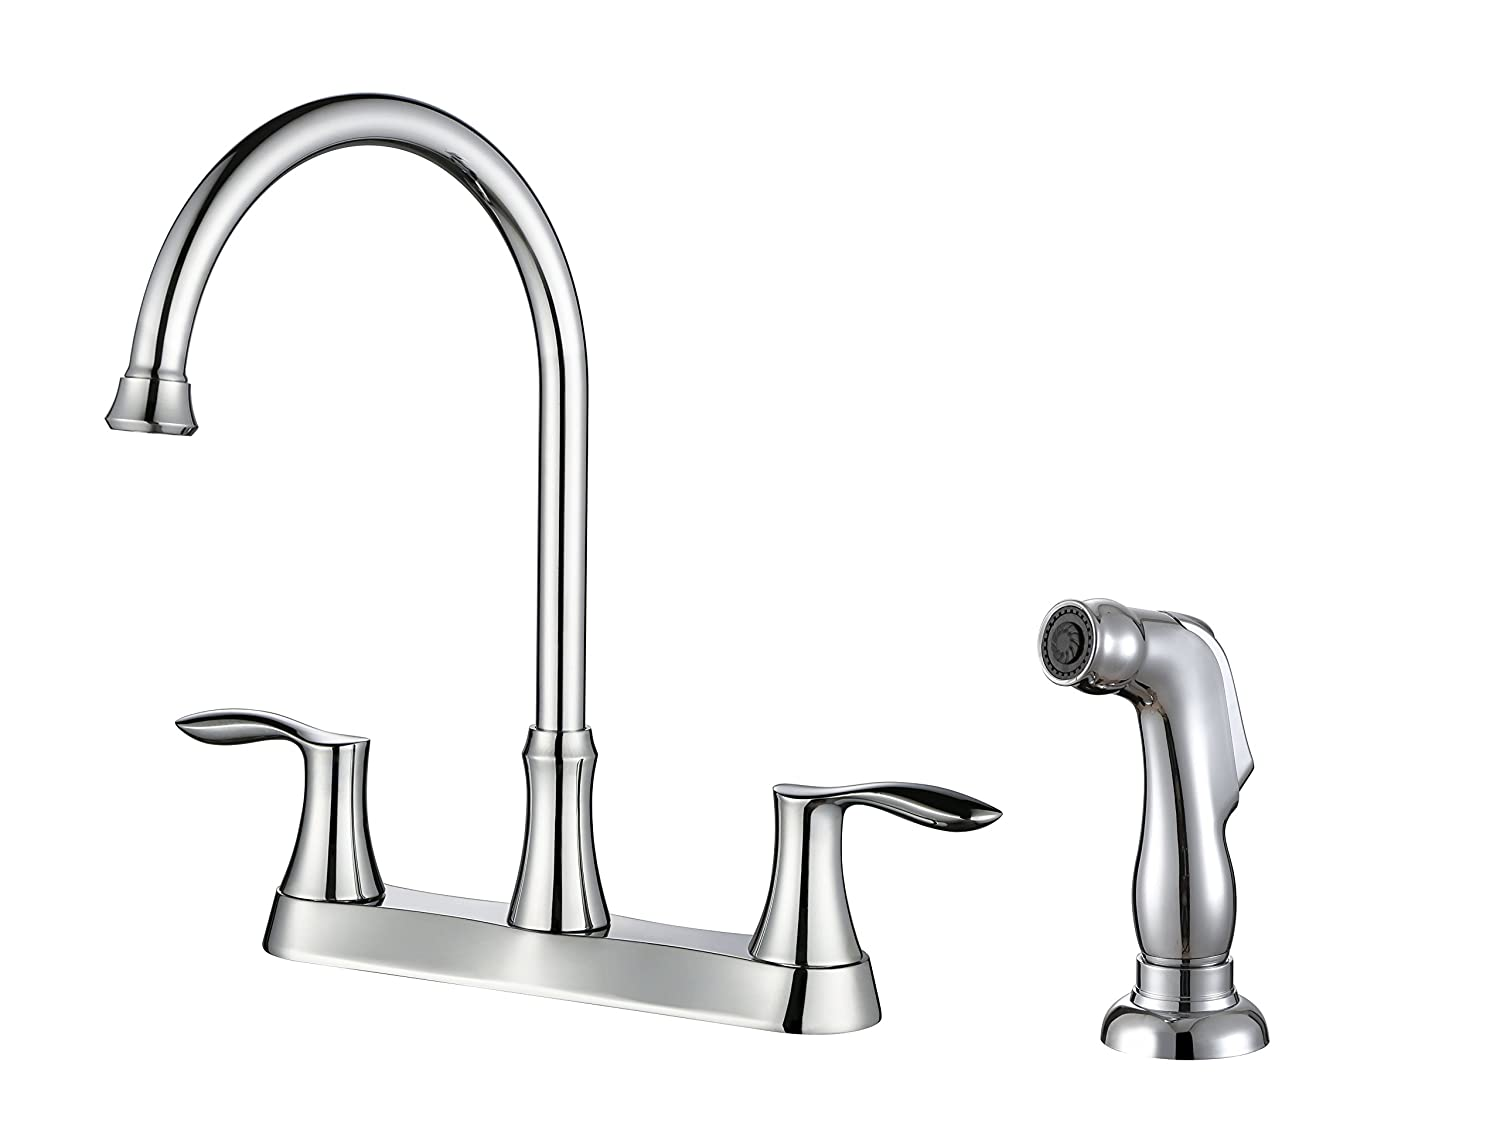 DuBeta Two Handle Kitchen Sink Faucet W/Side Spray, Brushed Nickel